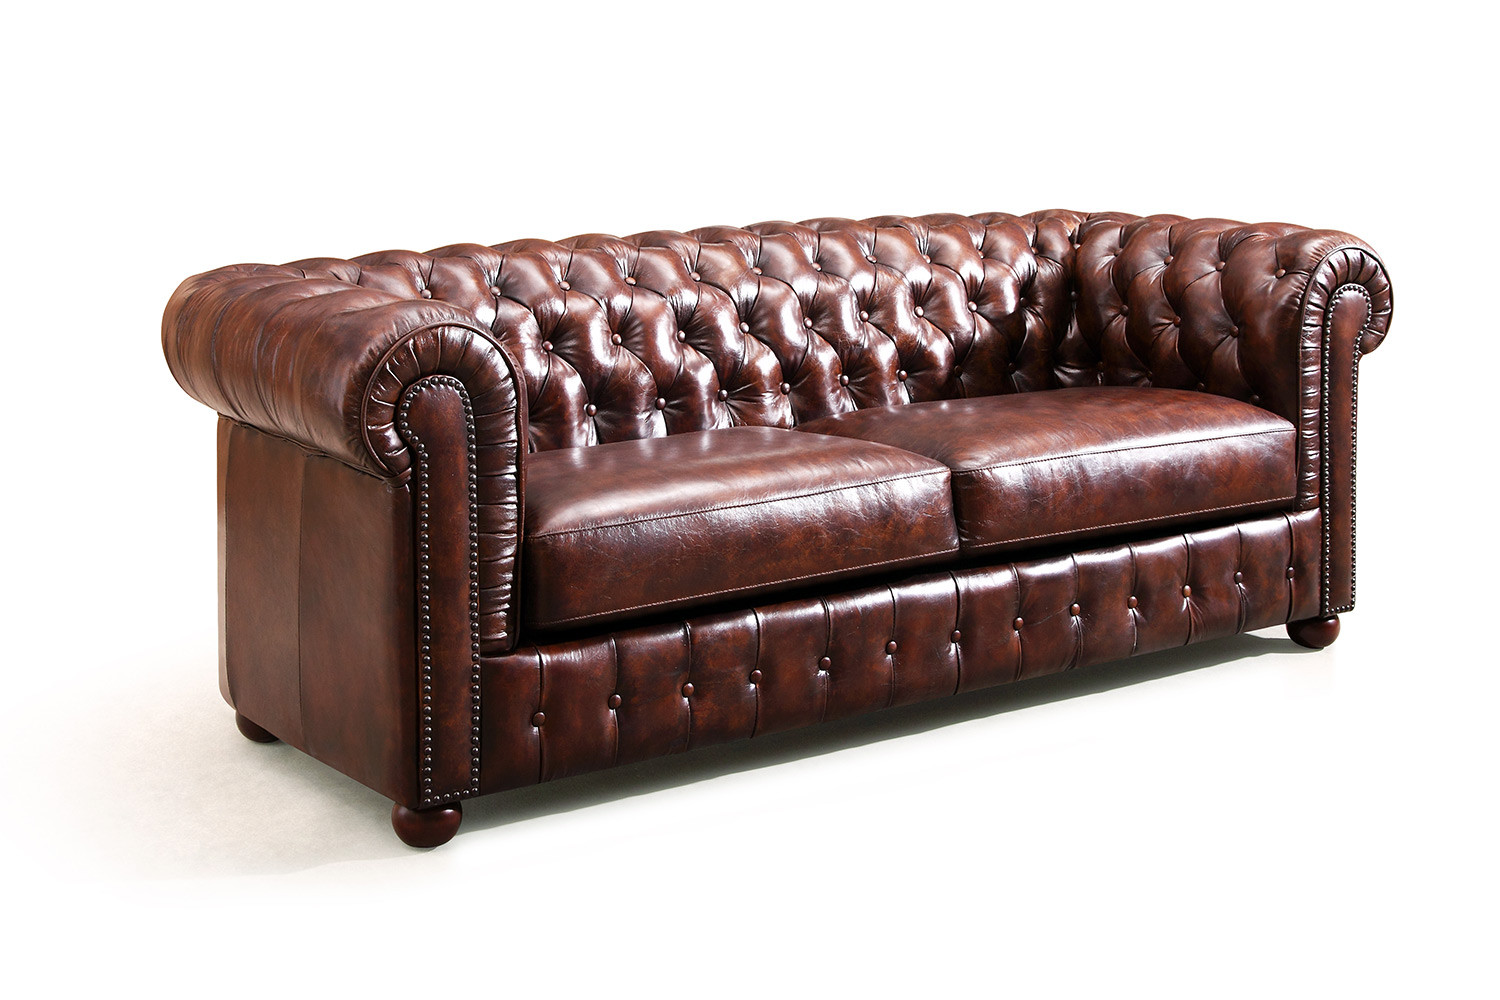 Leather sofa world 2017; What you are expecting to find 9 Leather sofa world 2017; What you